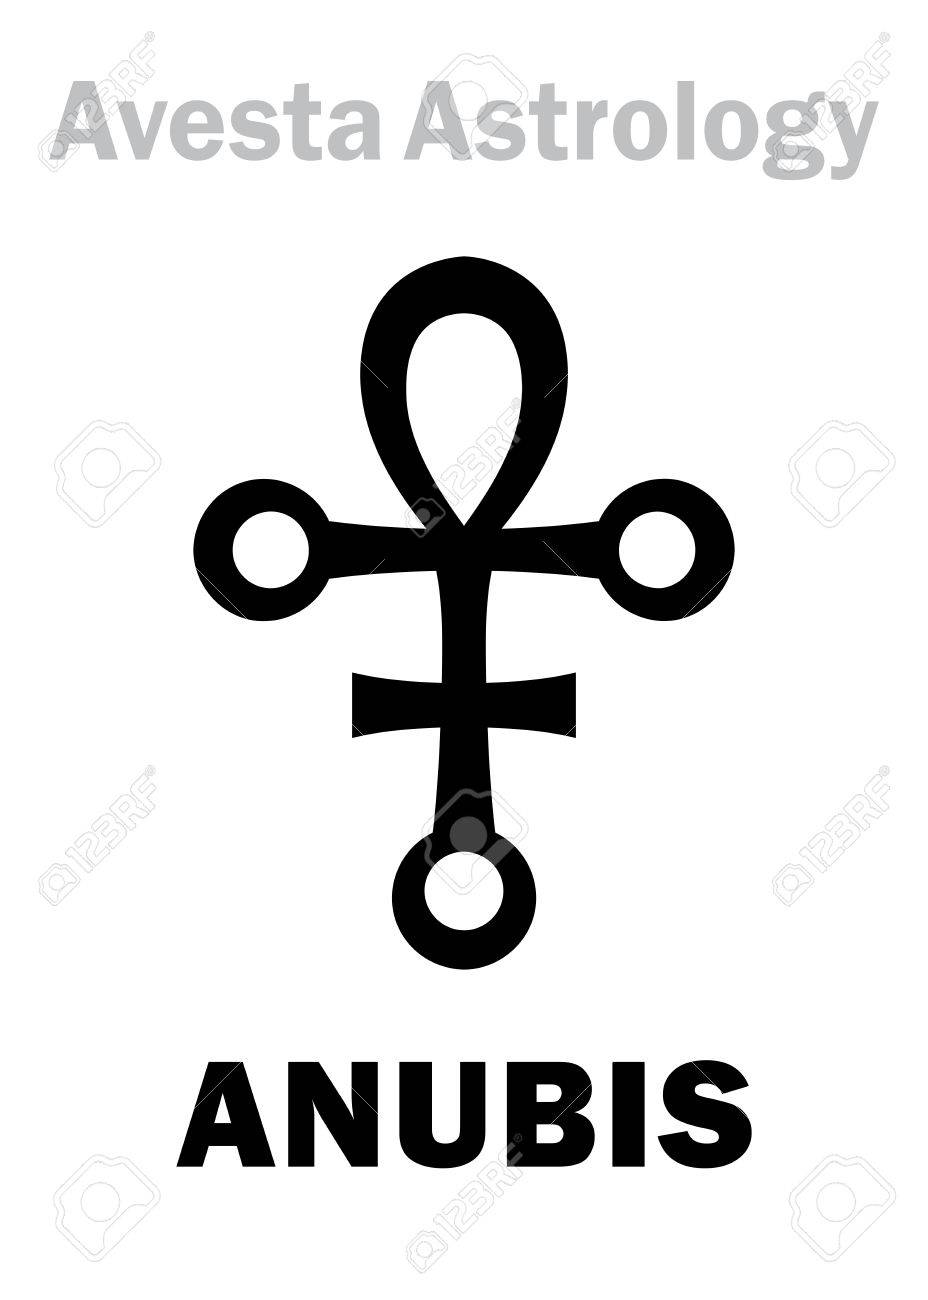 Astrology Alphabet: ANUBIS, Avestian astral planet-conductor